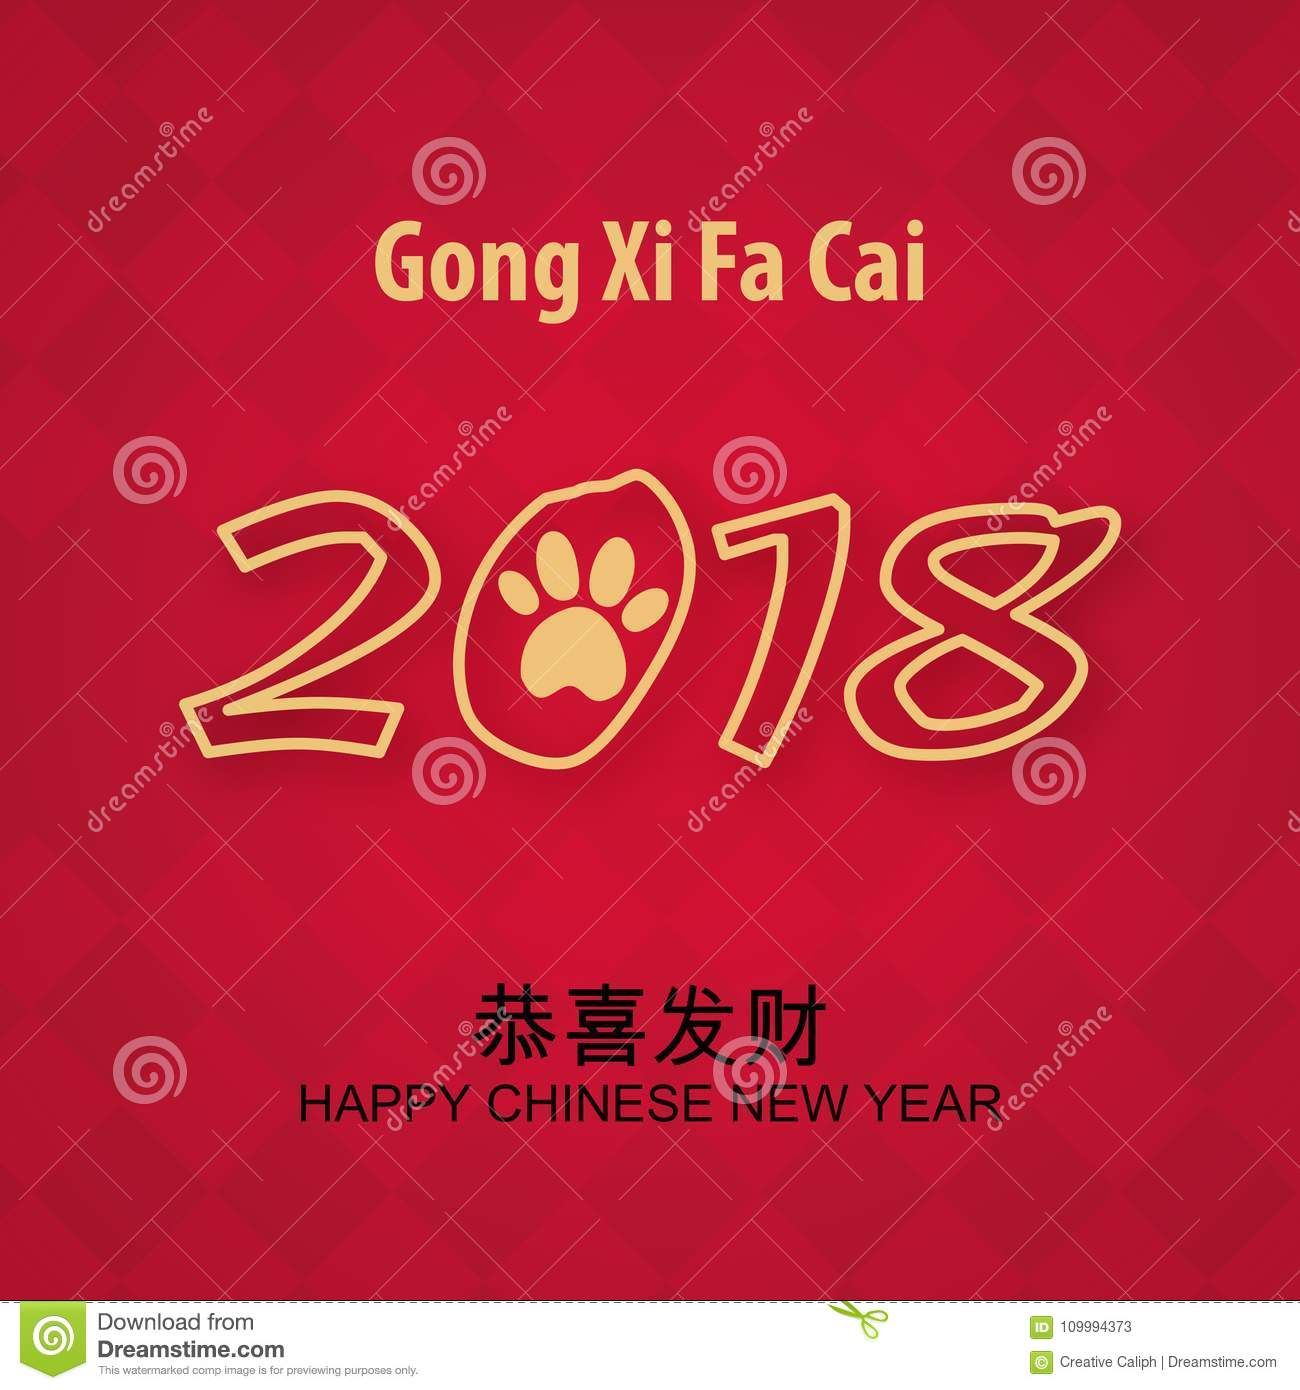 chinese new year greeting card design chinese translation gong xi fa cai means may prosperity be with you